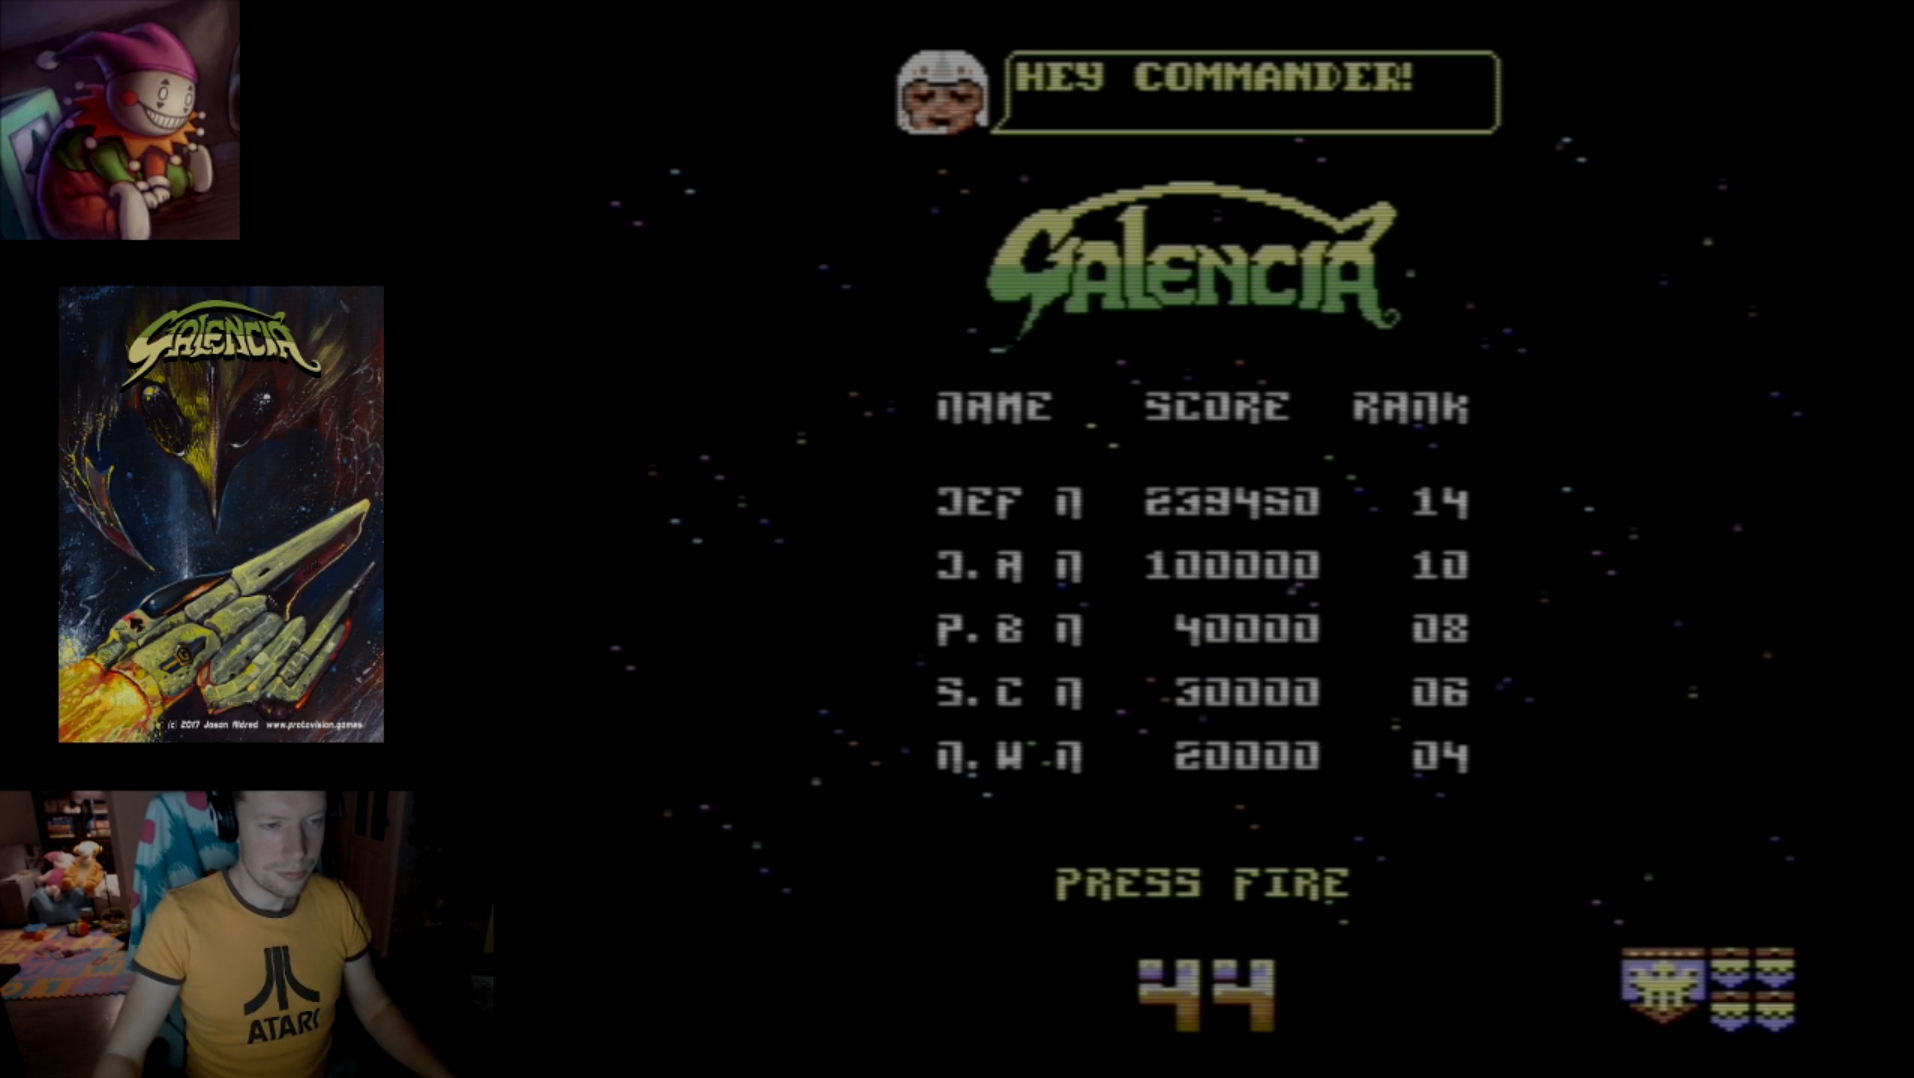 LittleJester: Galencia [Normal] (Commodore 64 Emulated) 239,450 points on 2018-02-11 15:31:07